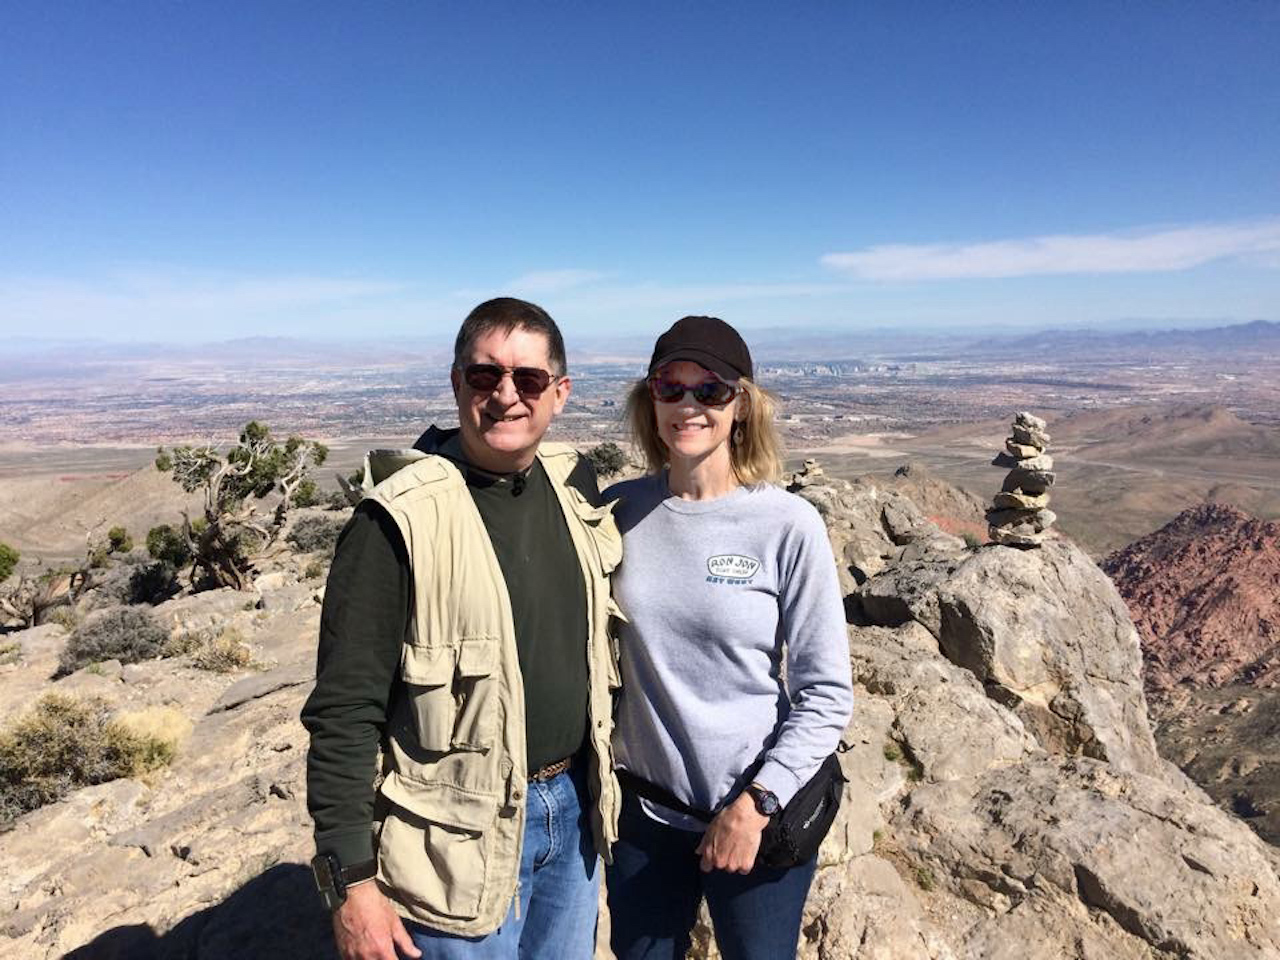 Garwood and his wife, Charlotte, at the top of Turtlehead Peak in Red Rock Canyon National Conservation Area, Las Vegas.